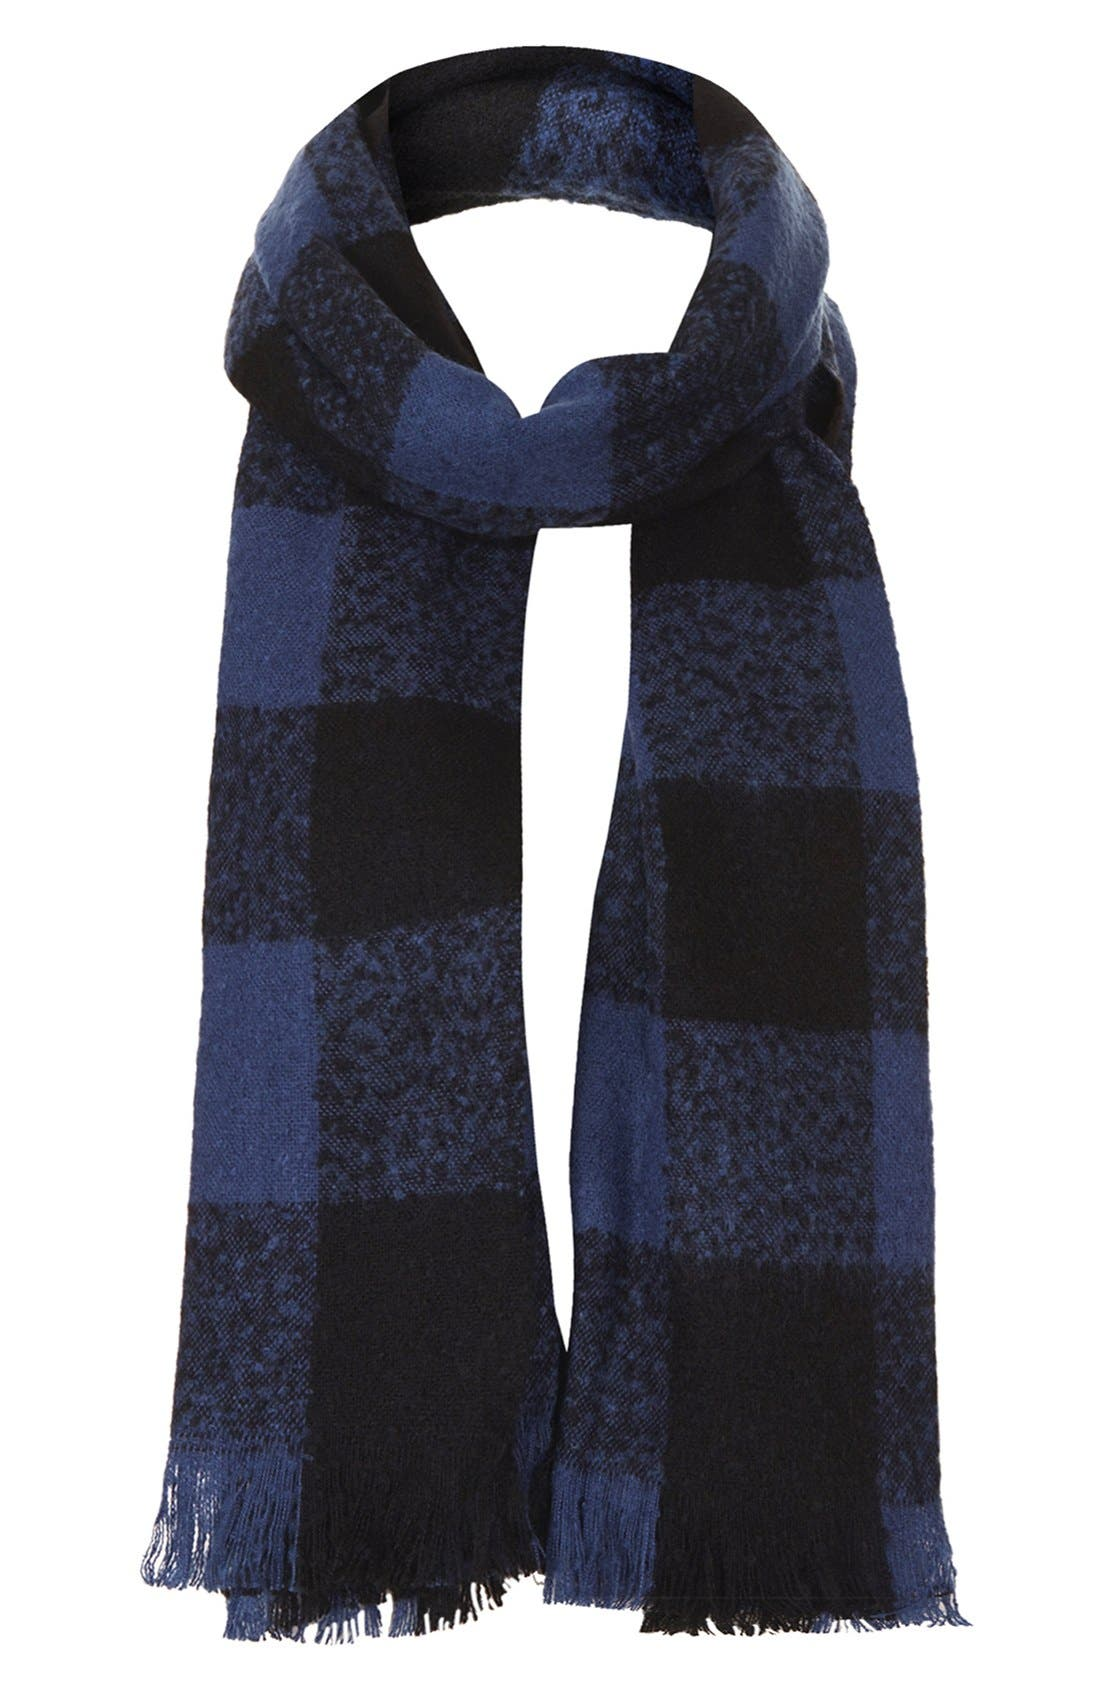 Alternate Image 1 Selected - Topshop Check Print Scarf